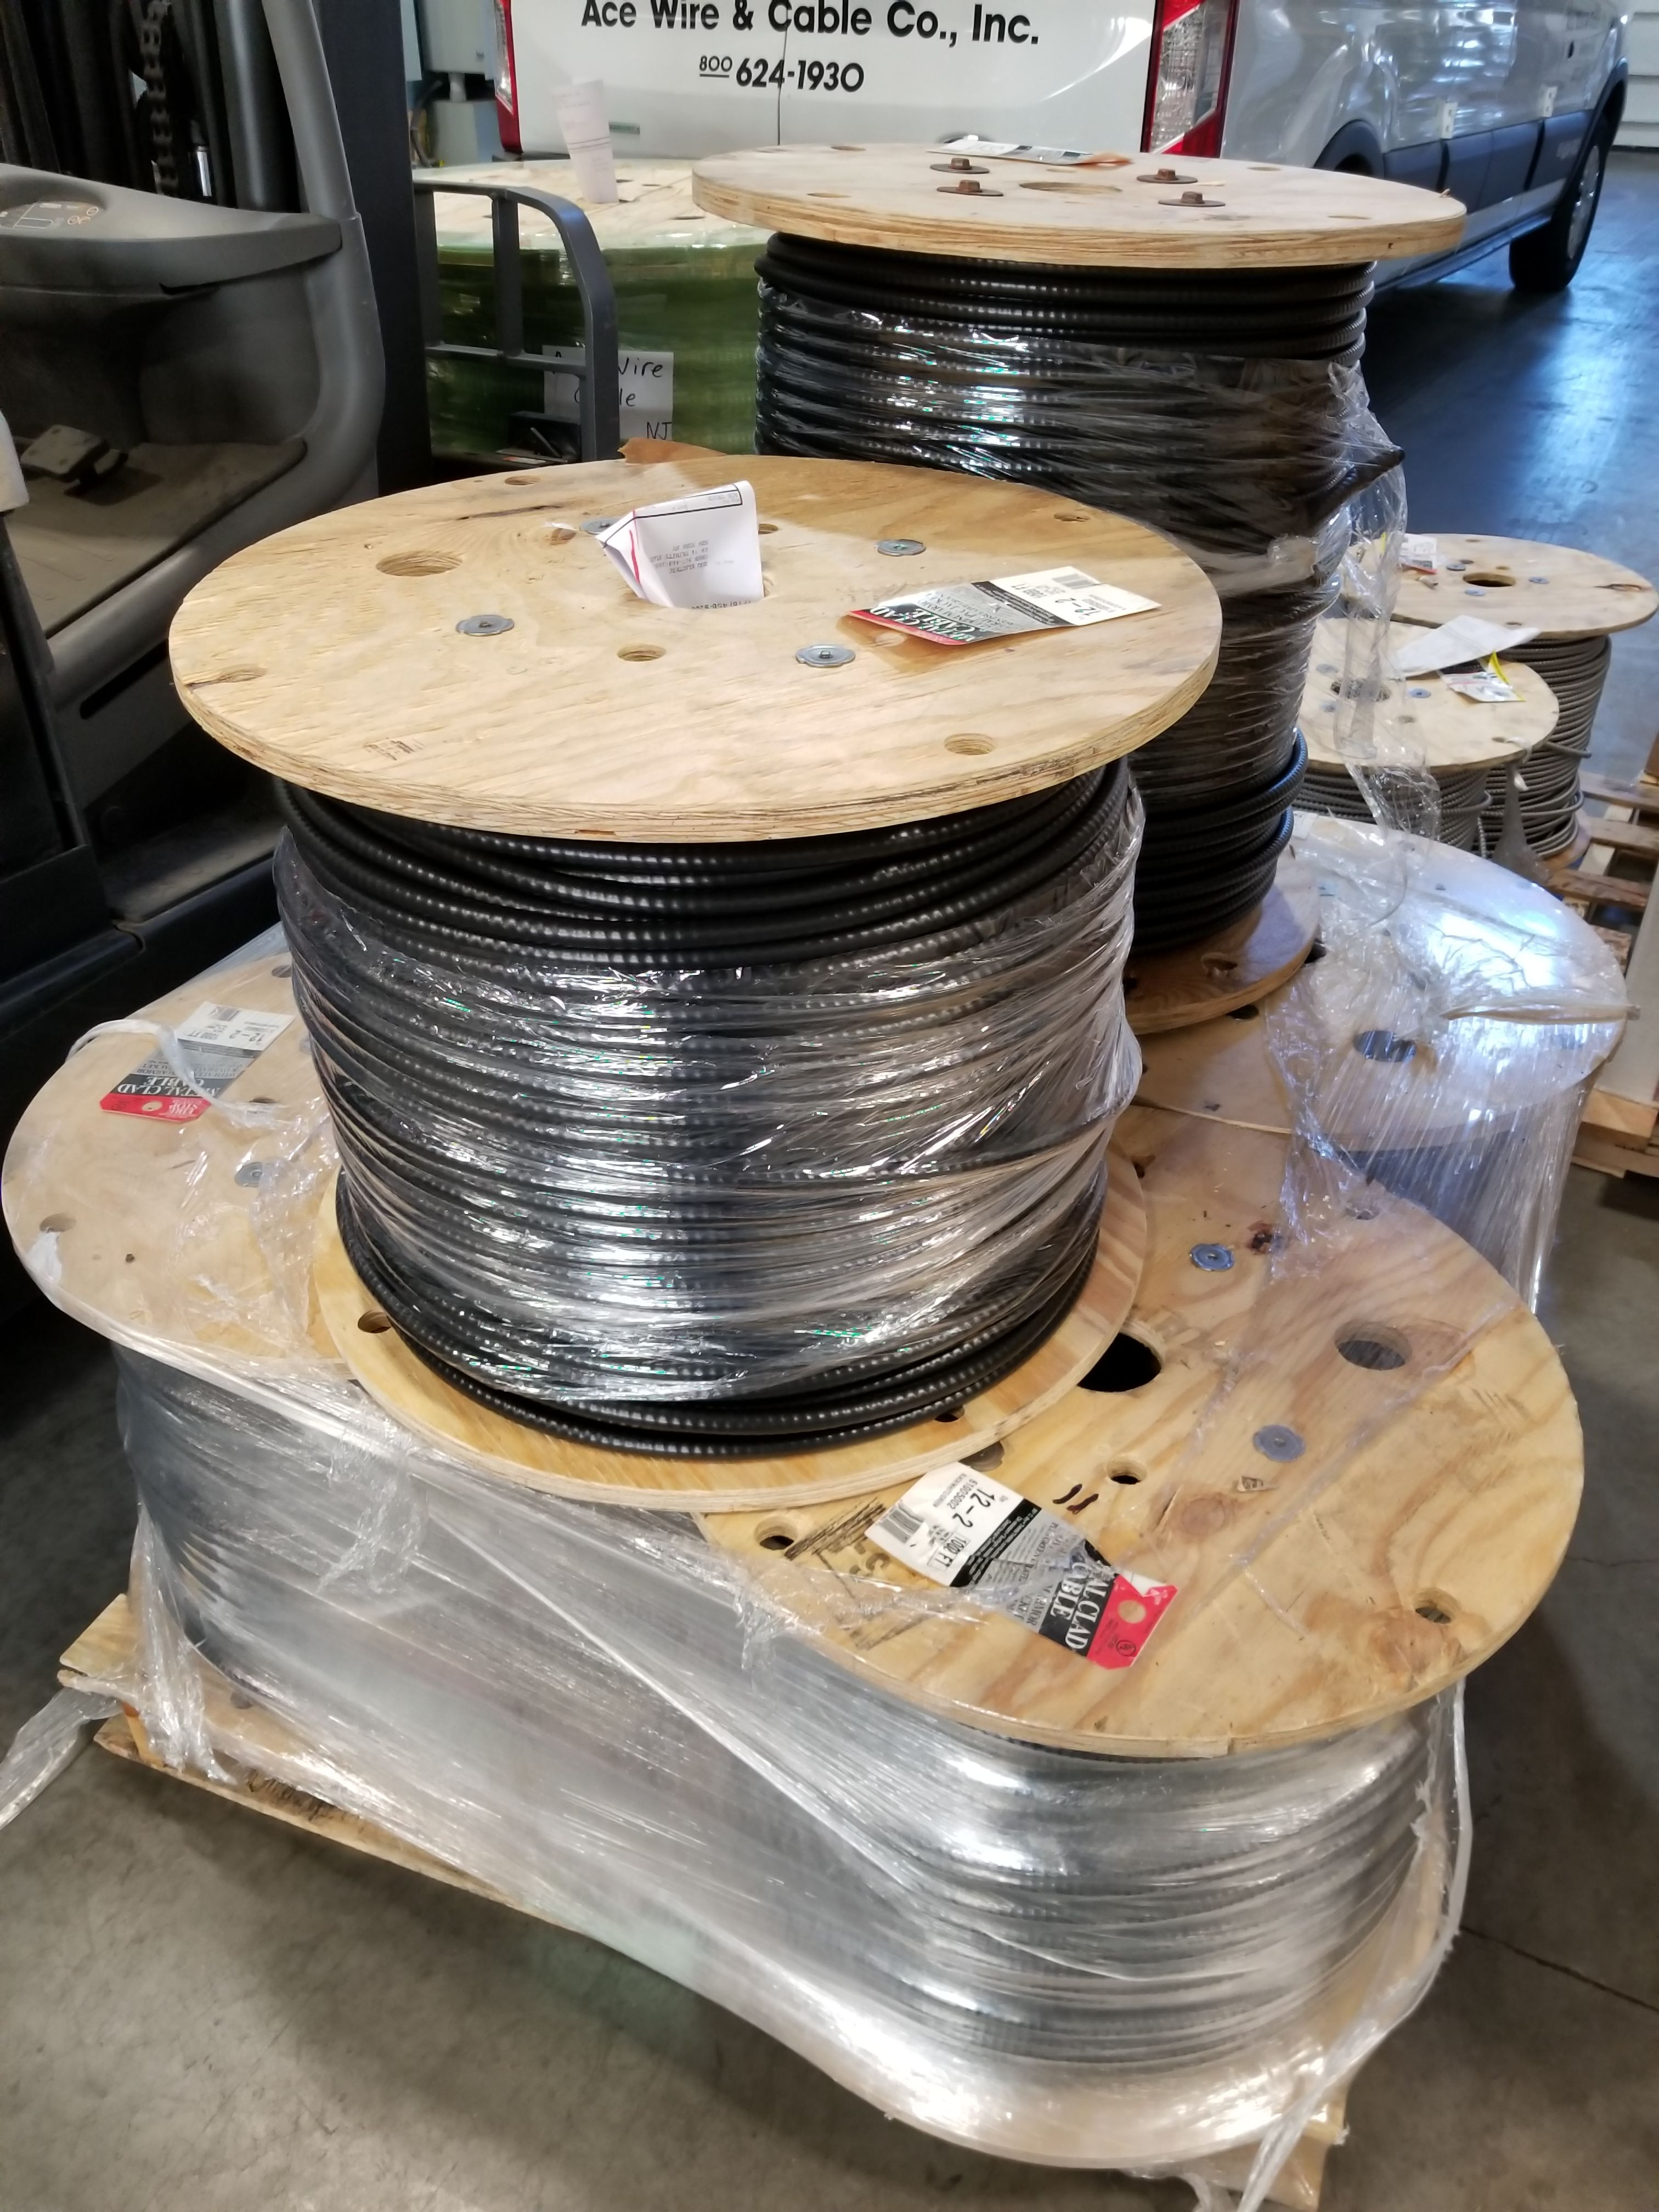 Reels of 12/2 #PVC Coated #MC #Cable ... #MCJ #AceWire #wire #copper ...